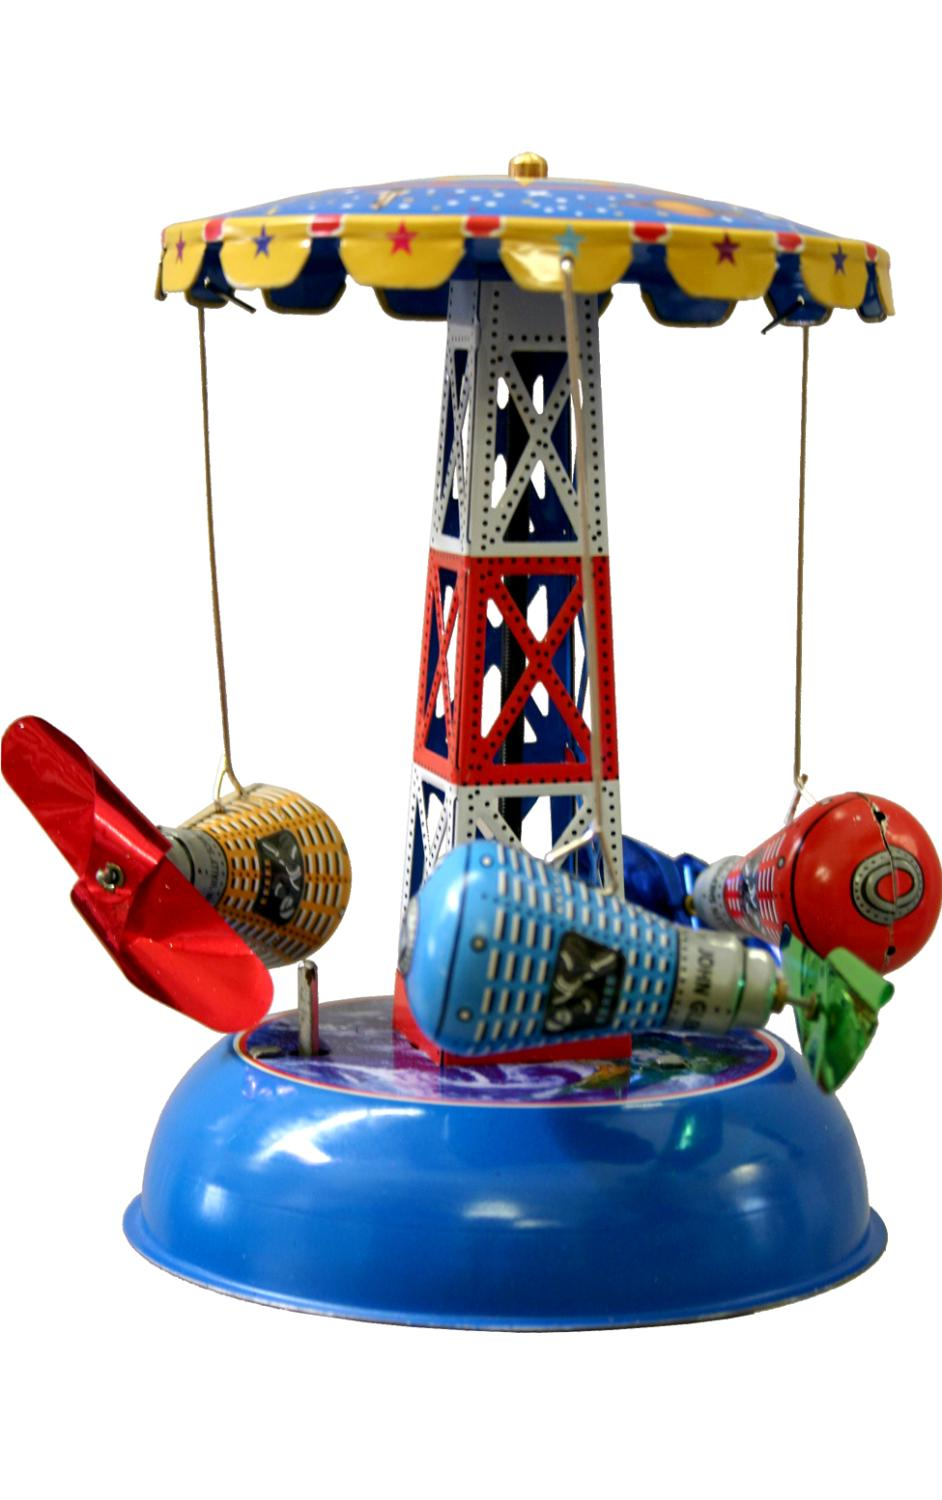 MS631 - Collectible Tin Toy - Carousel with Space Capsules - 6.5